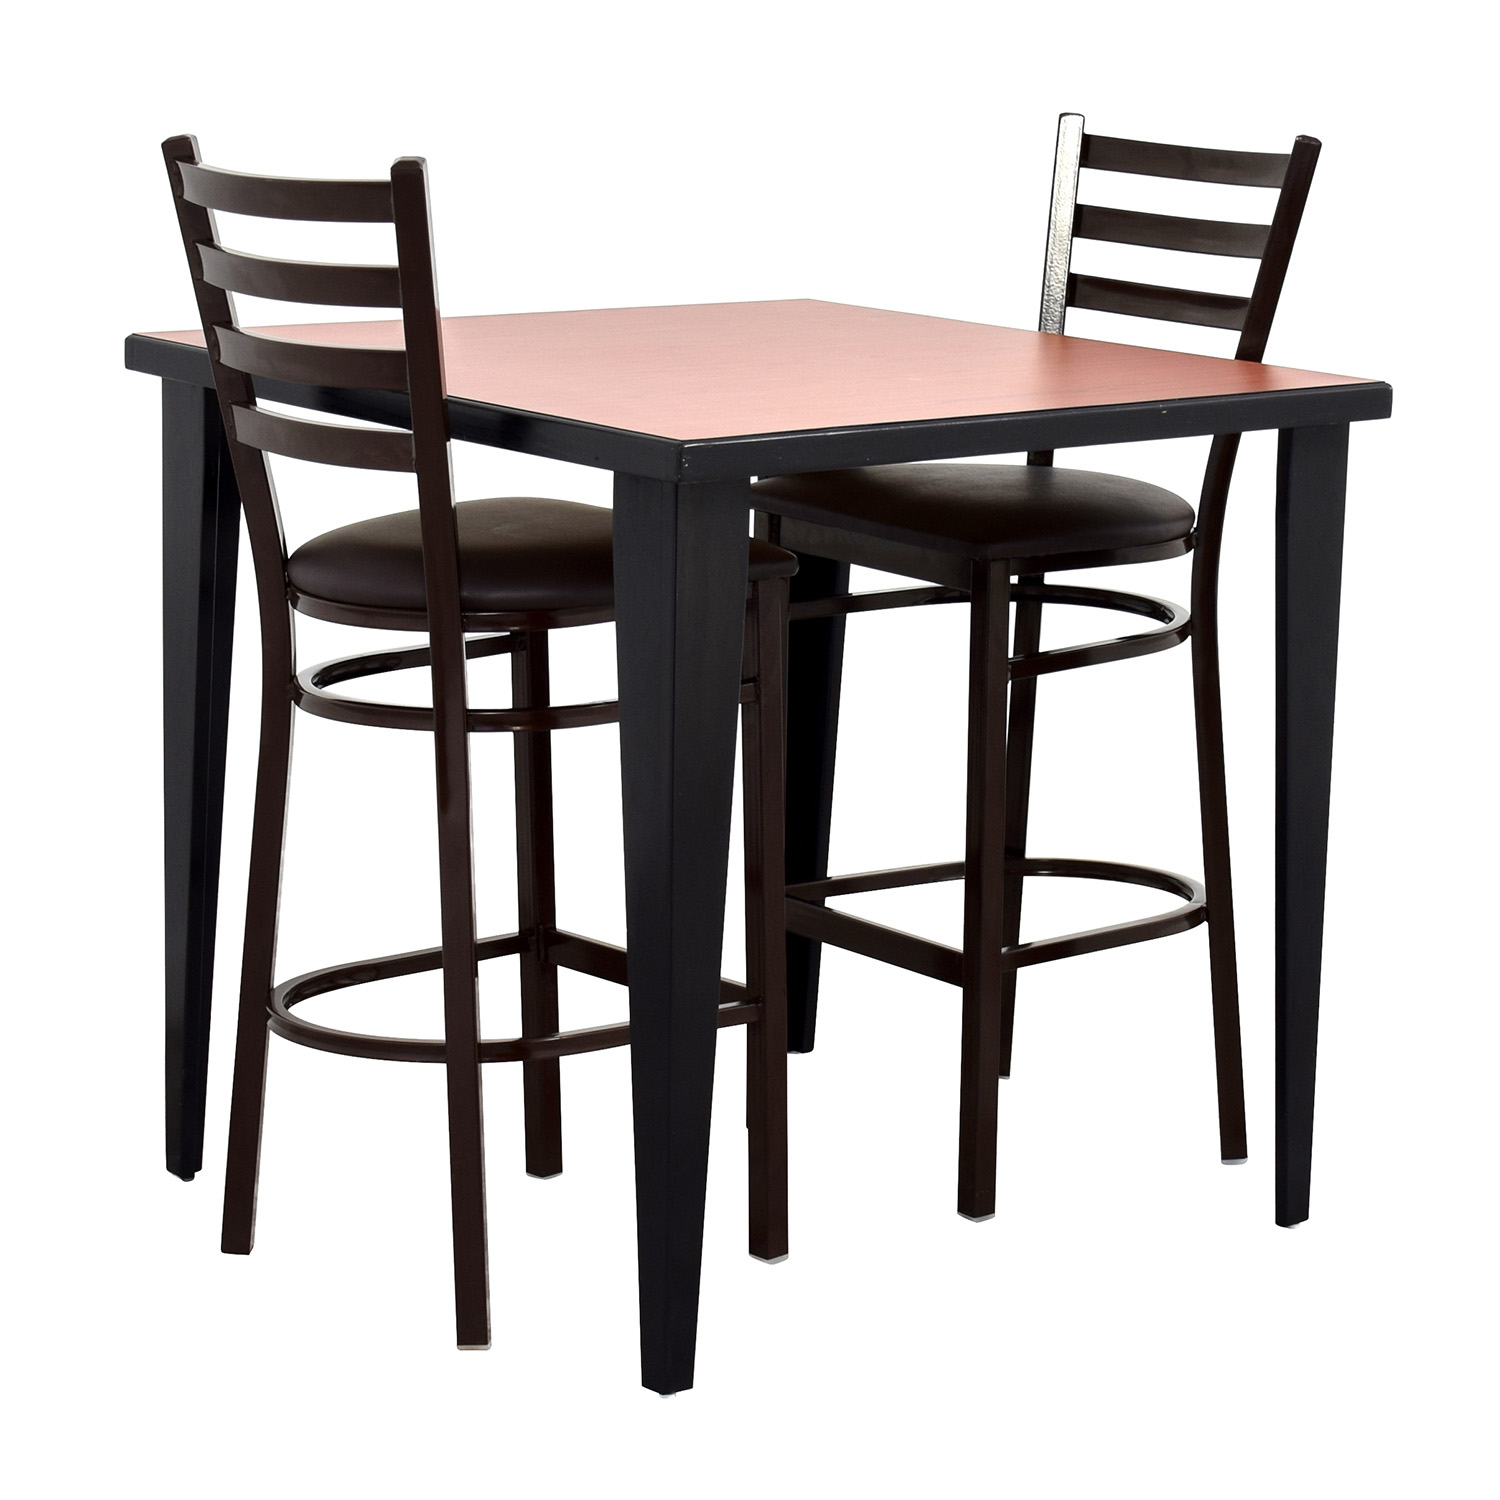 Dining Table With Two Chairs: Counter Height Kitchen Table And Two Chairs / Tables